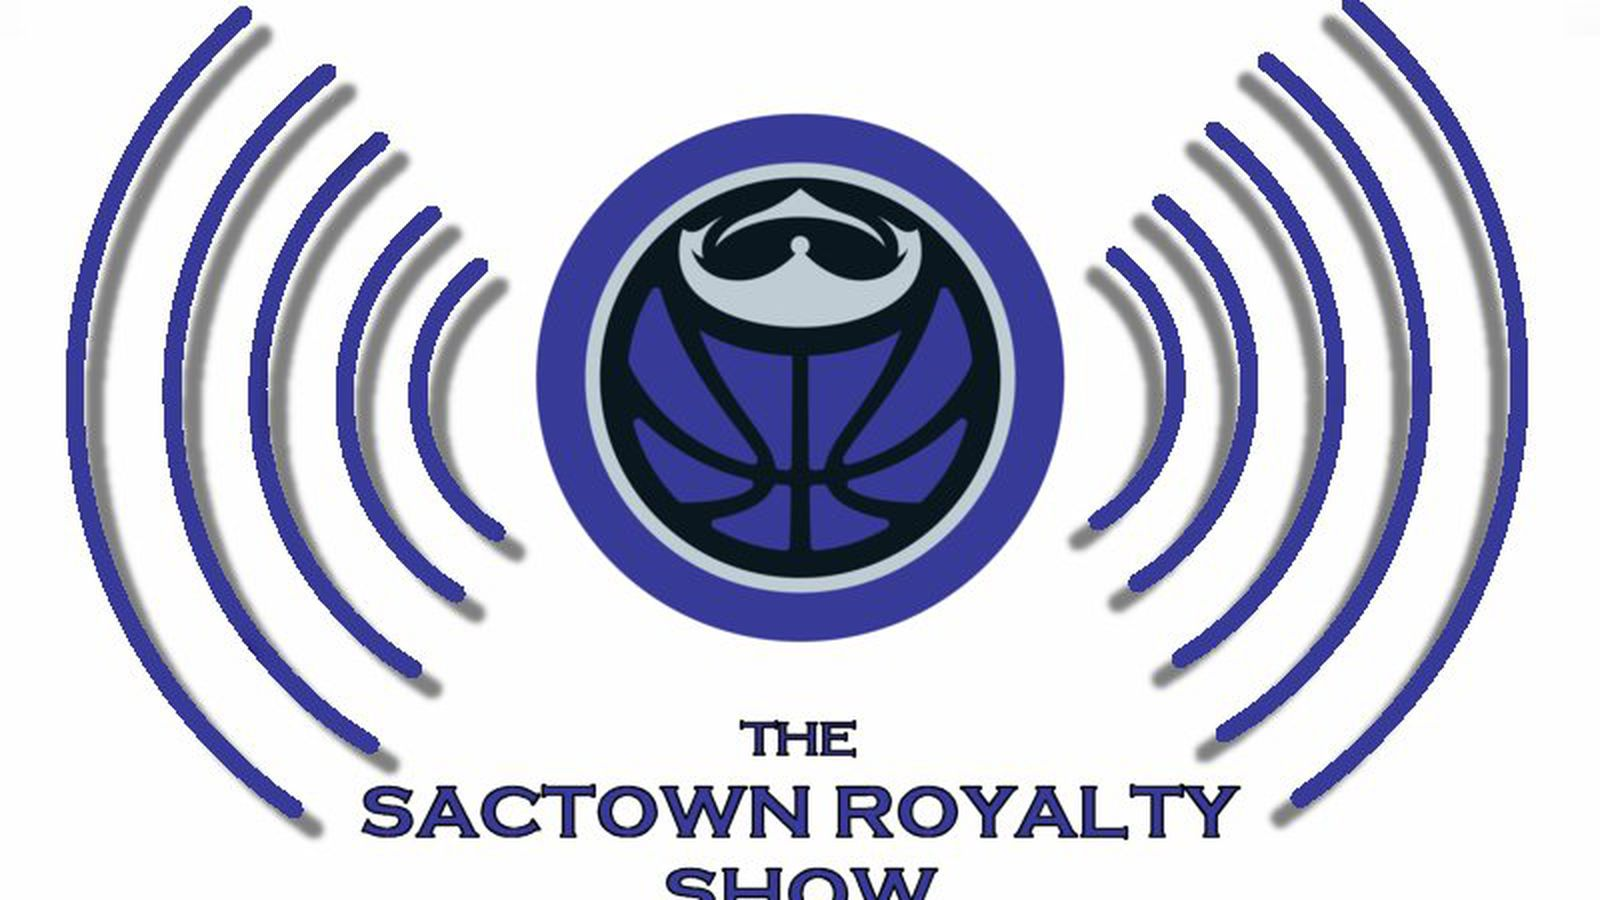 Sactown_royalty_show_logo.0